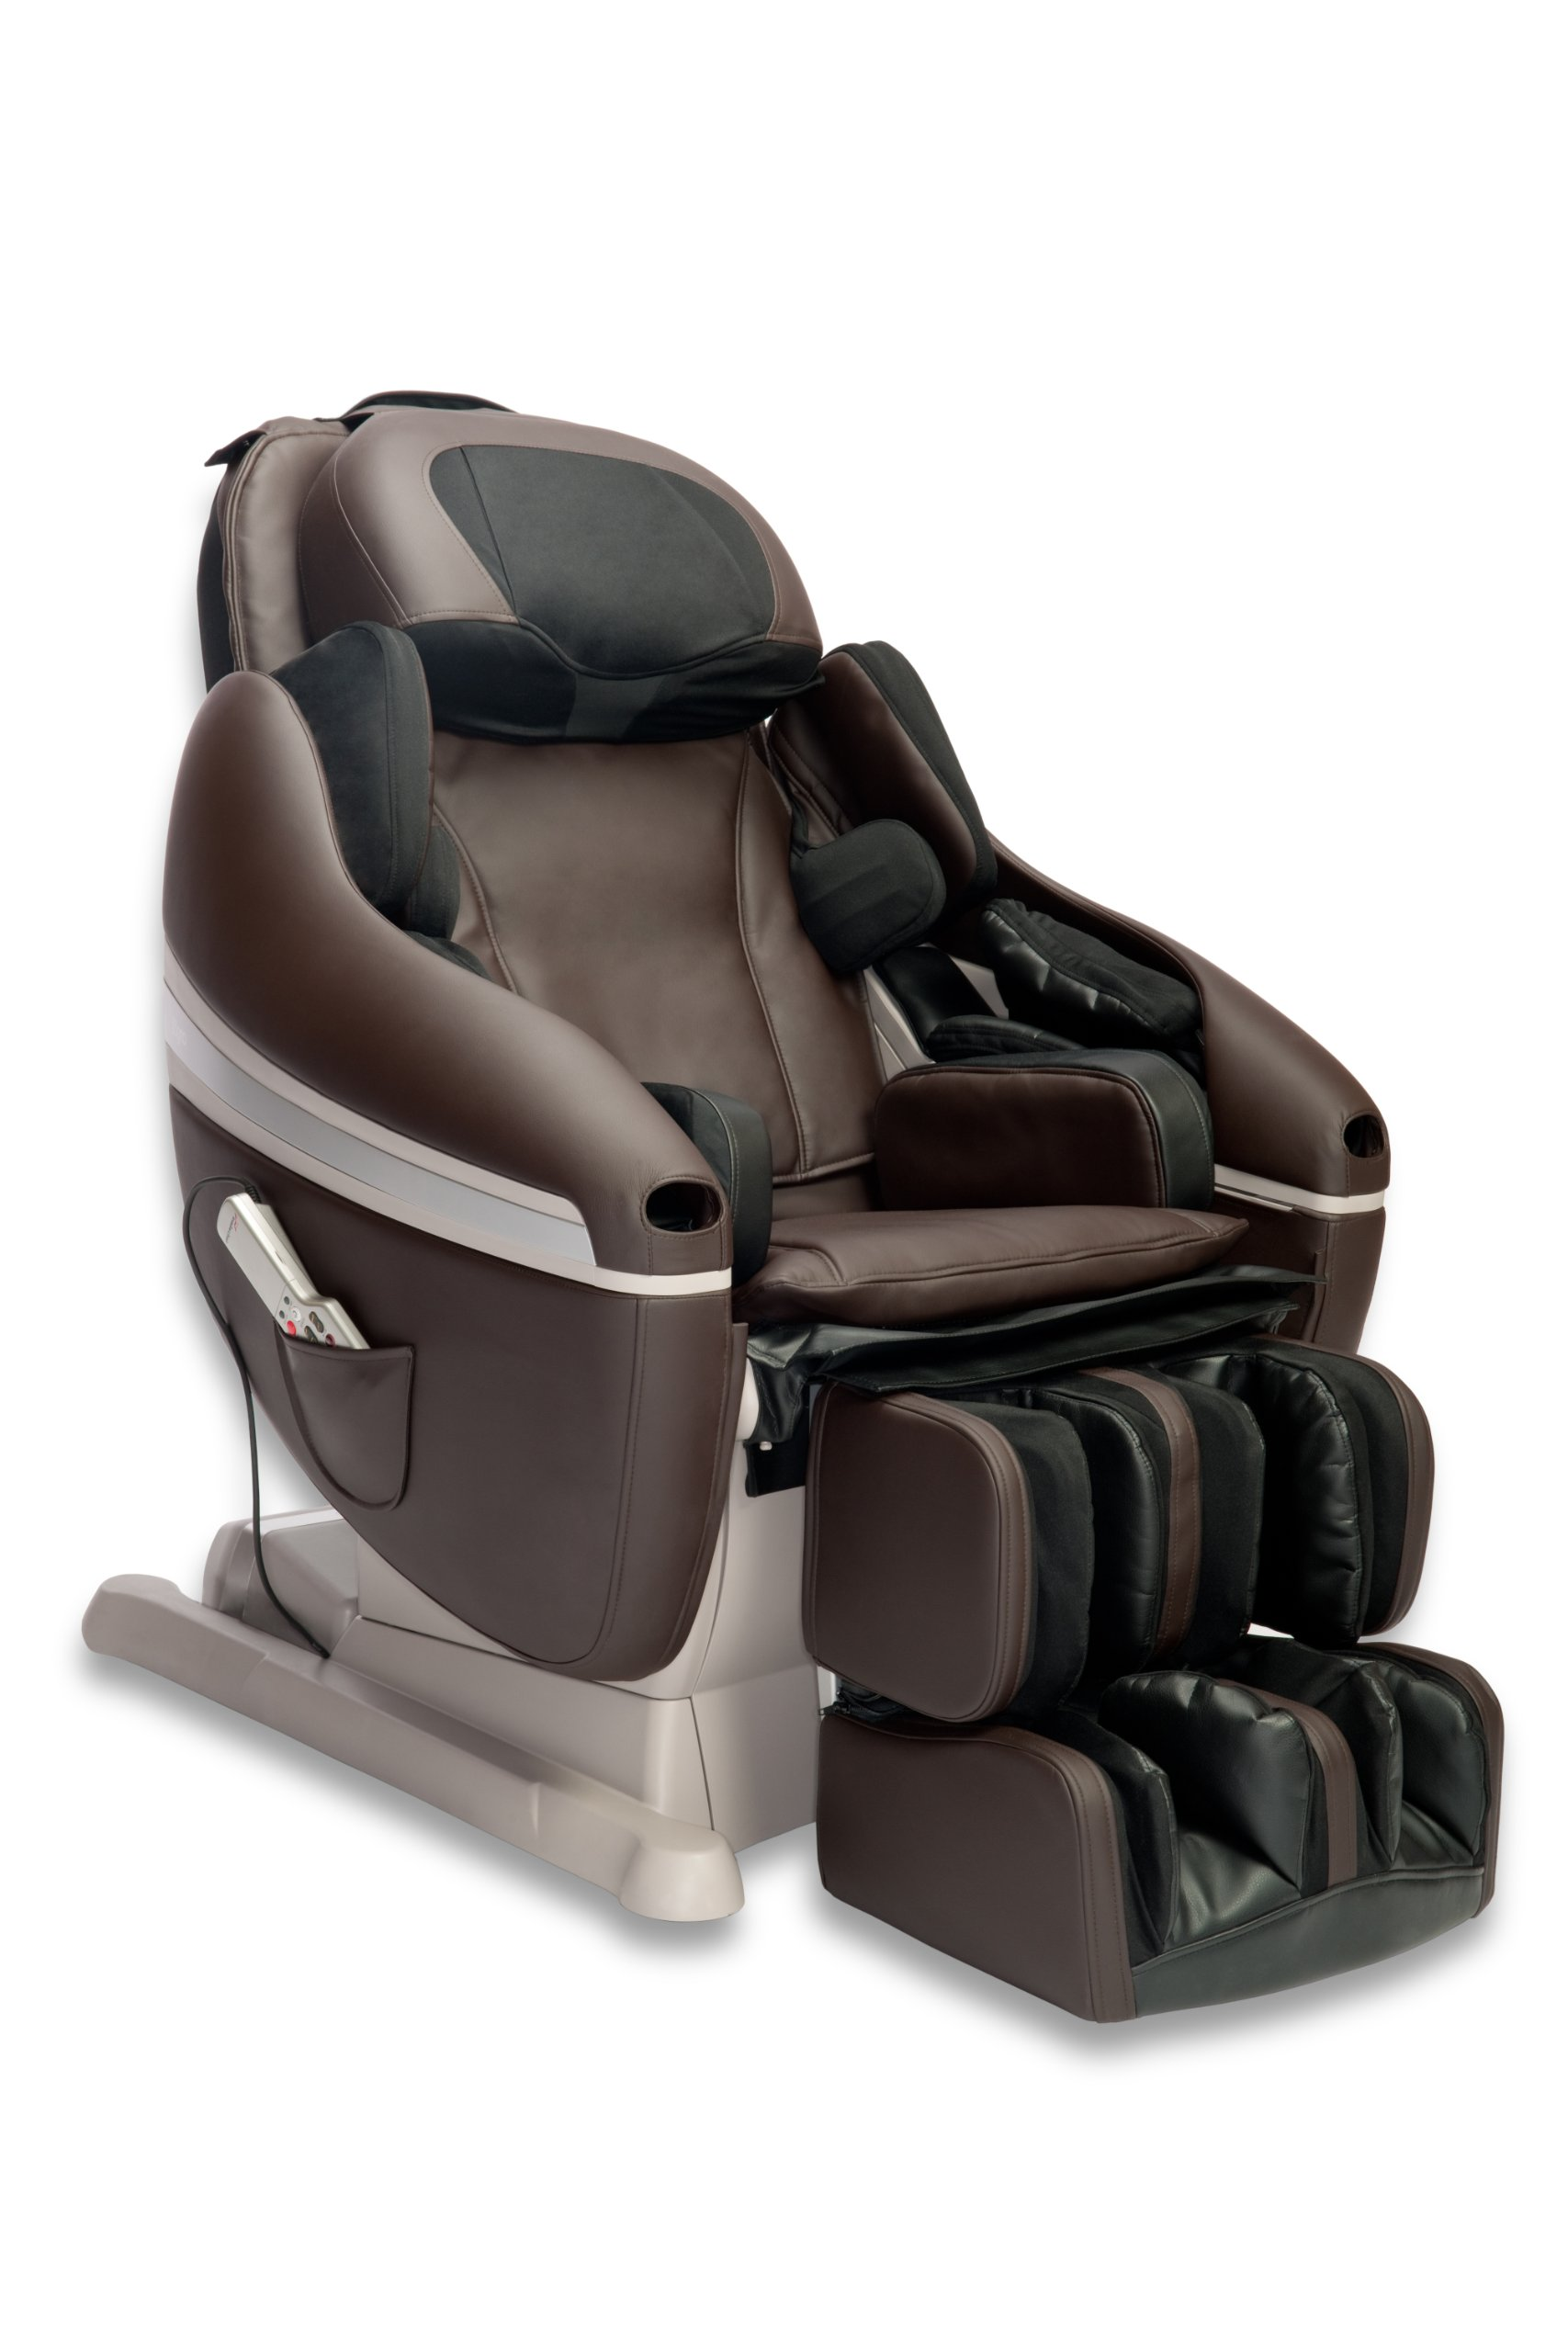 Best Massage Chair reviews - Inada Sogno Dreamwave Massage Chair